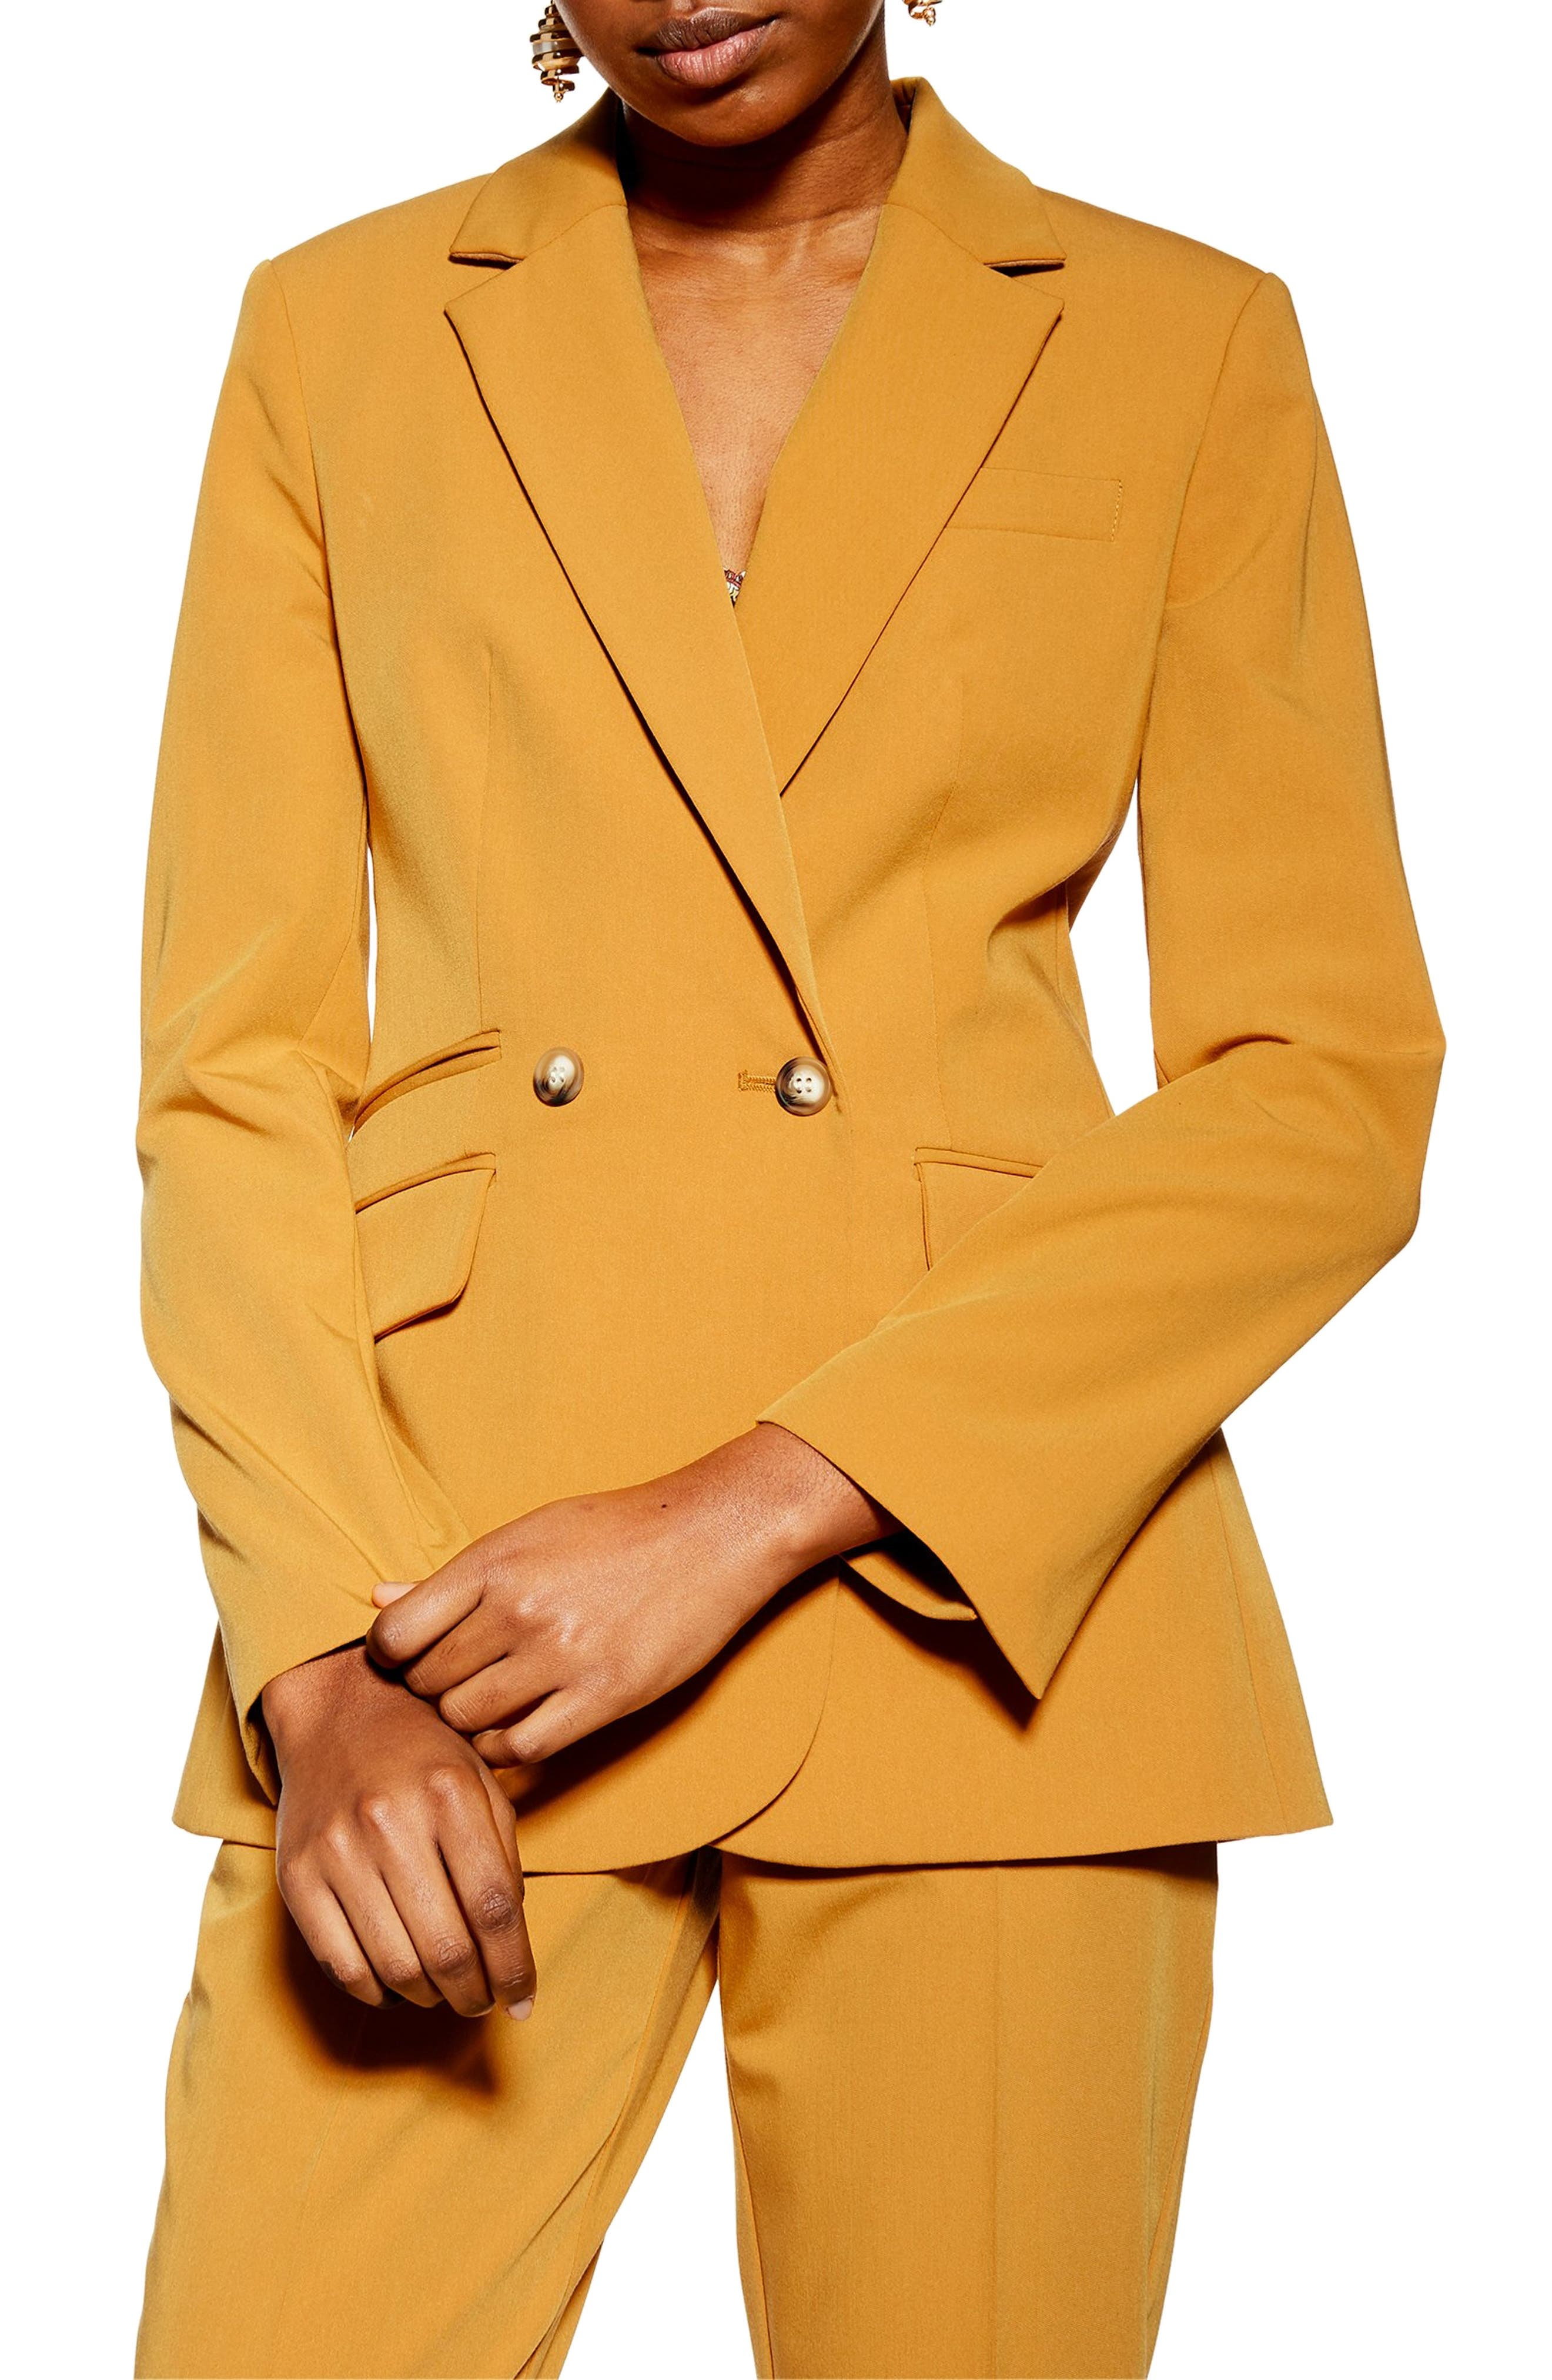 Topshop Double Breasted Jacket On sale